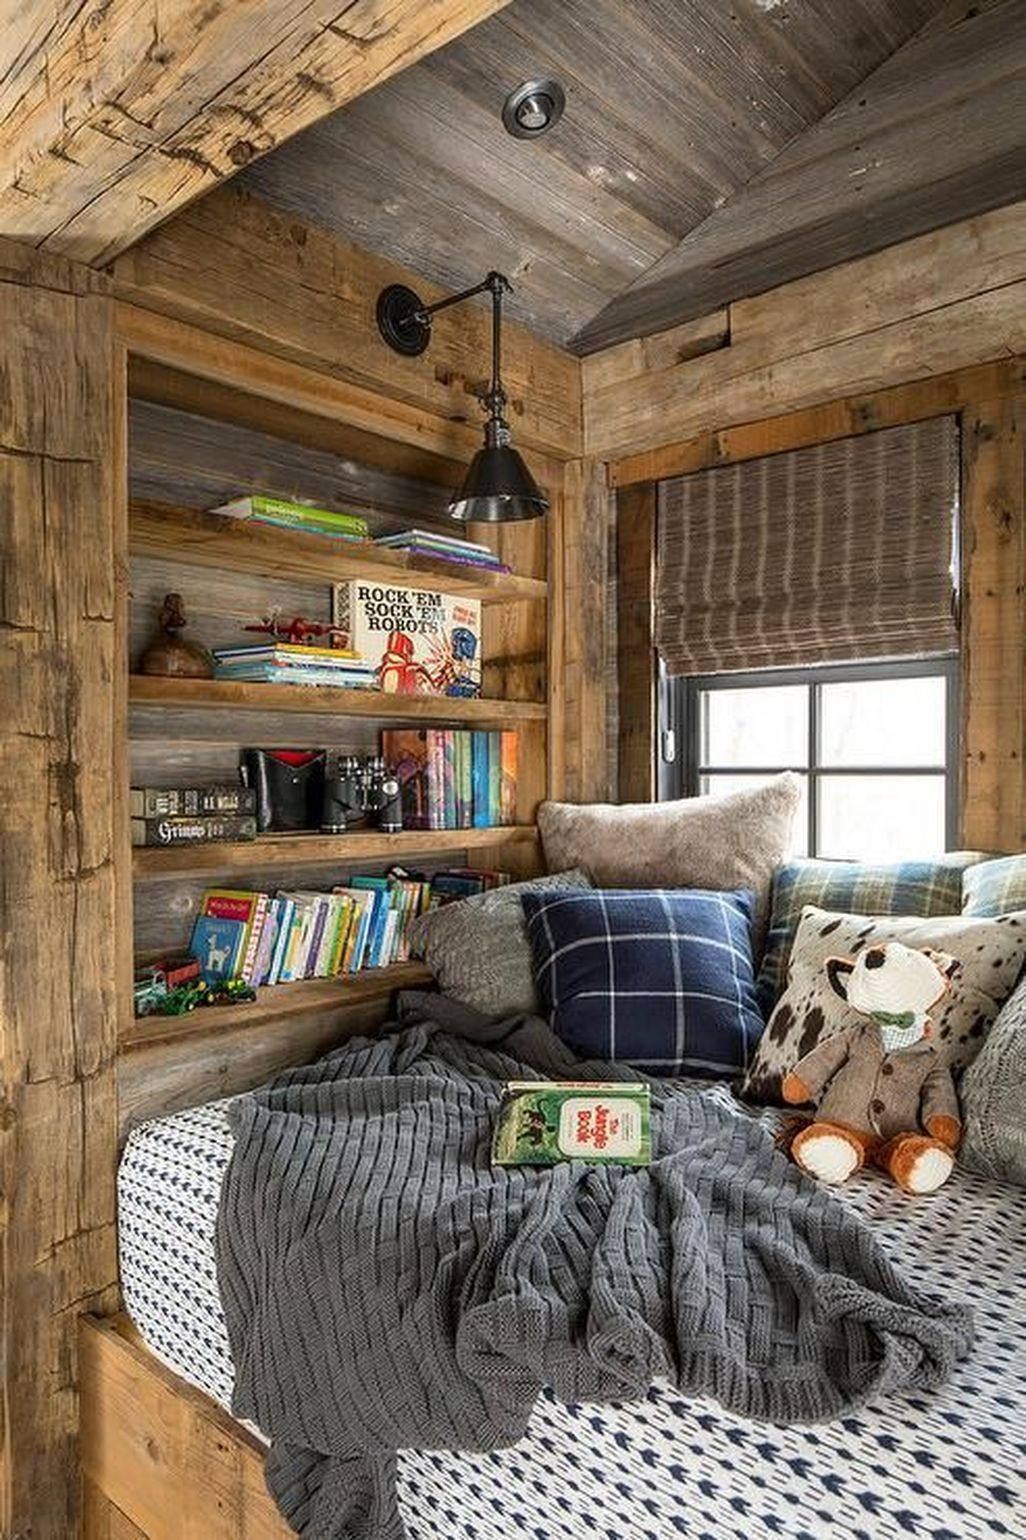 creative and modern kids  room decorating ideas image also gorgeous rustic cabin interior rh pinterest